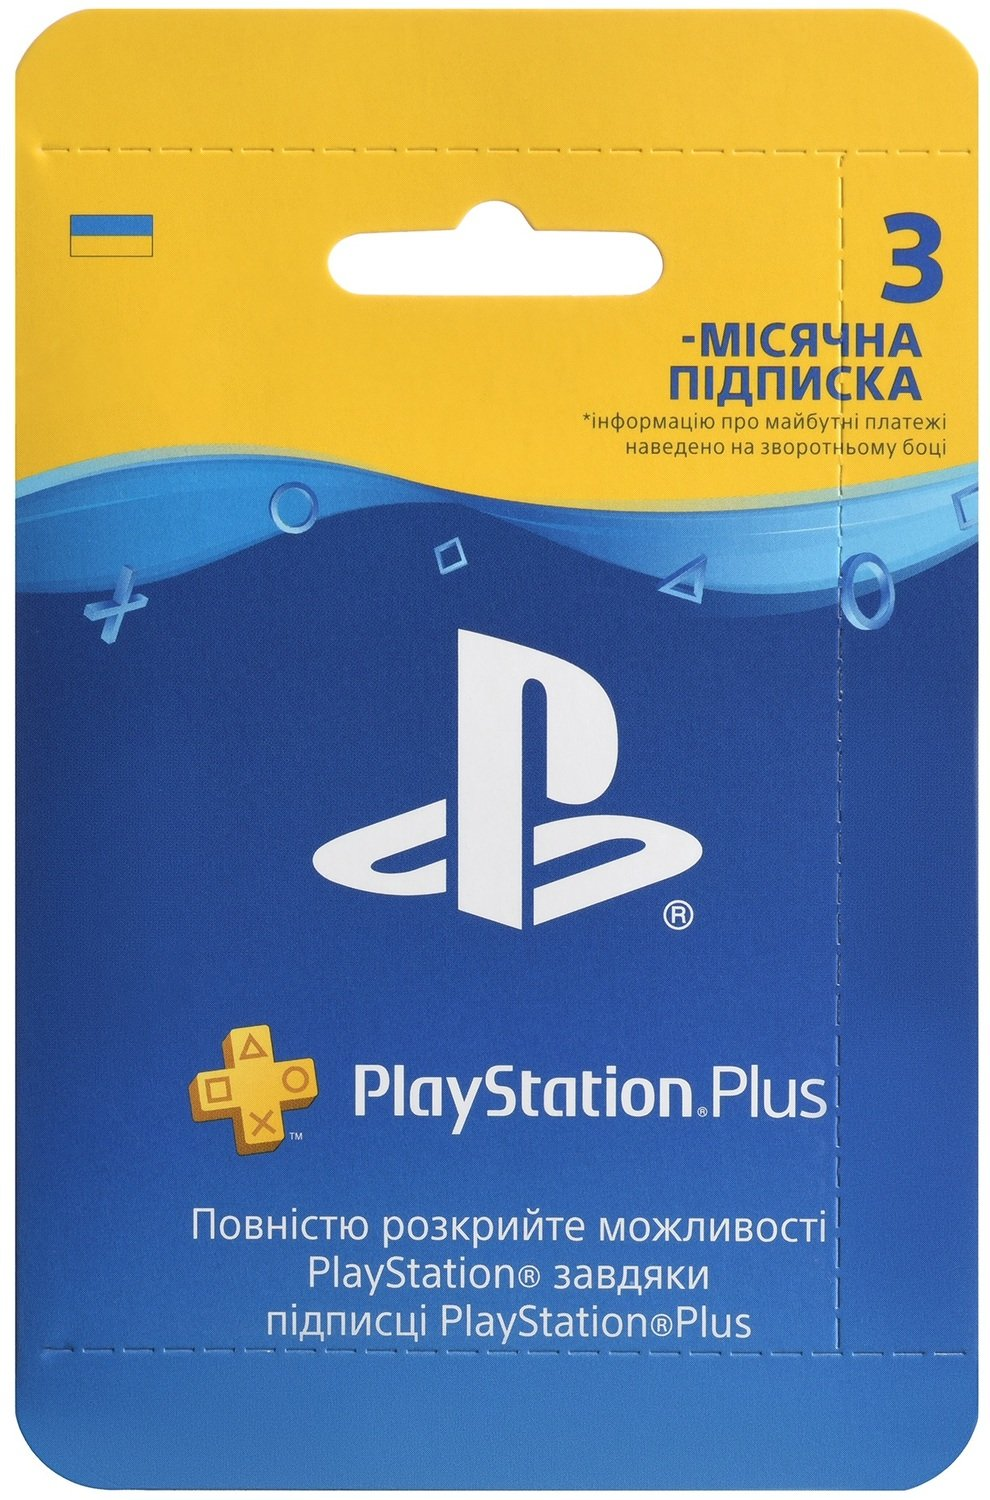 PlayStation Plus PSN 90 days (UA) Ukraine SCAN